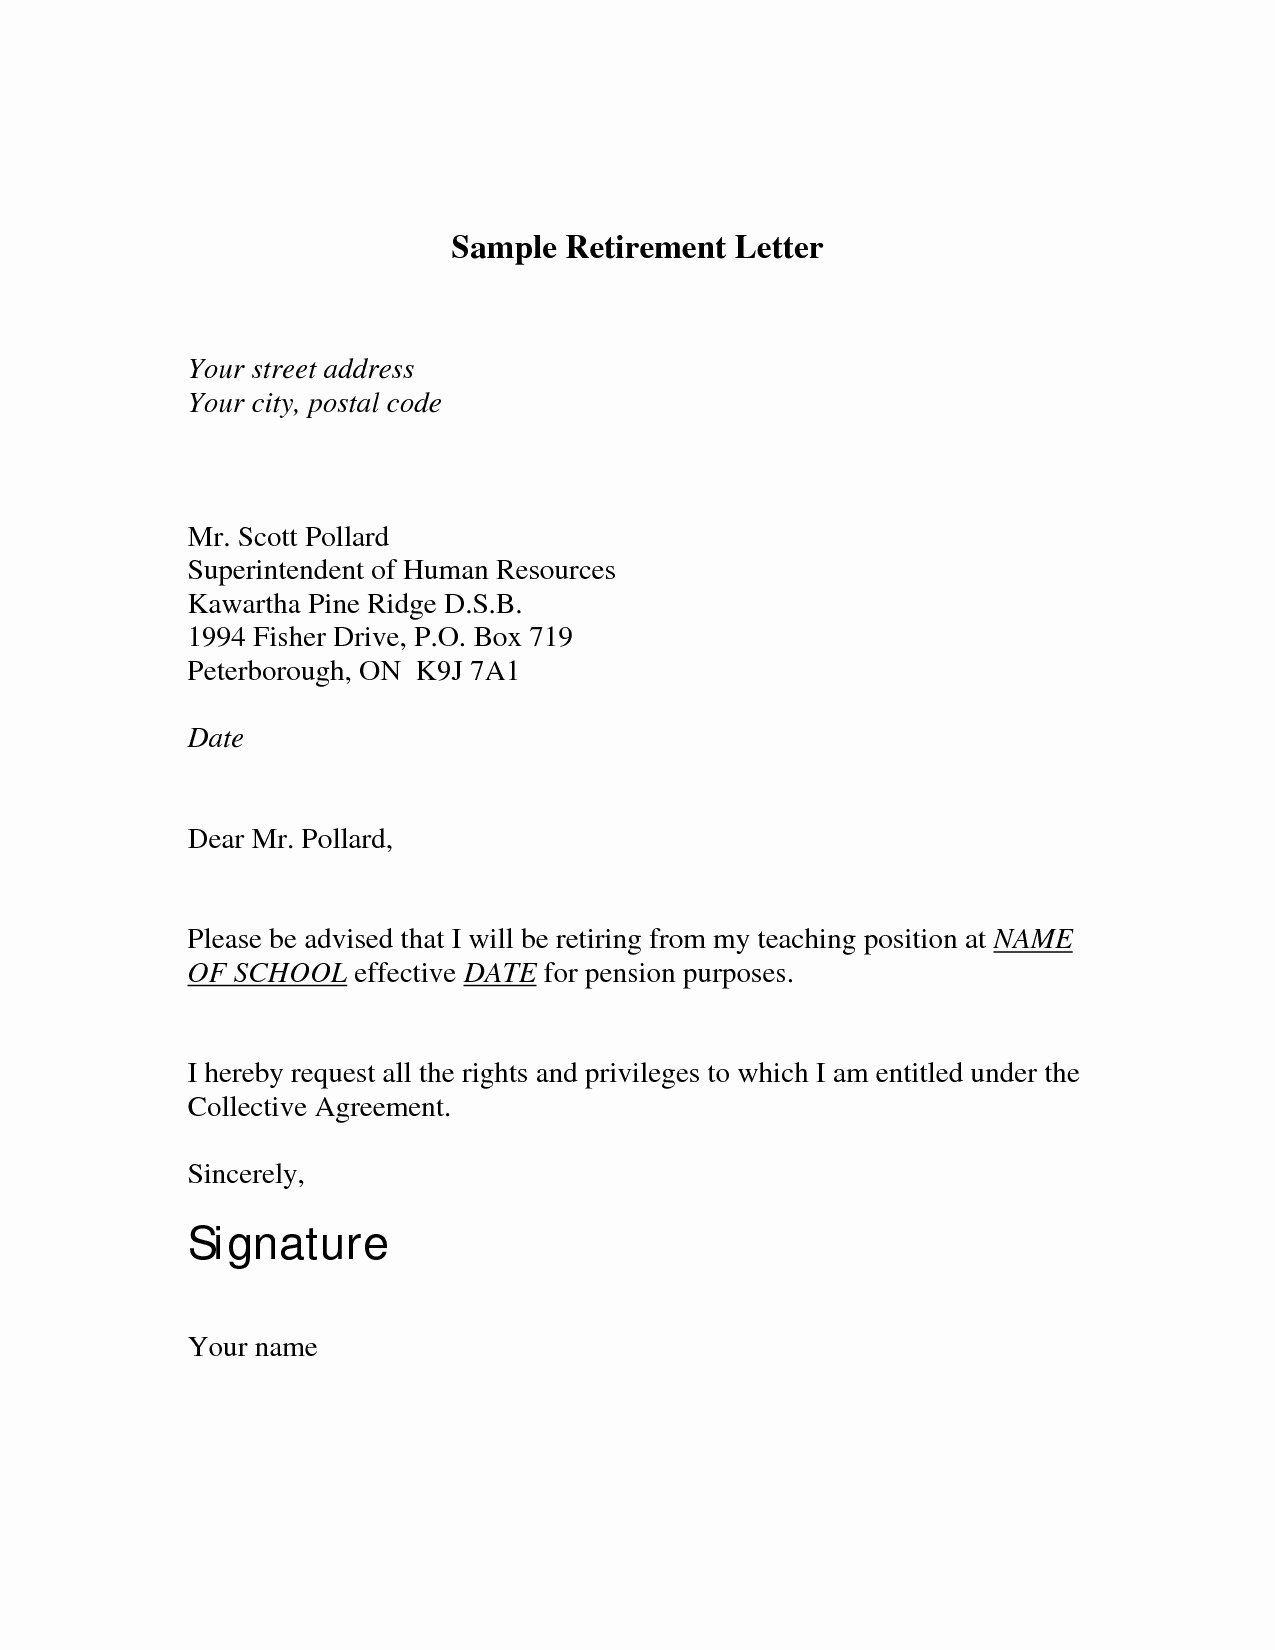 Letter Of Retirement Template New Retirement Letter to Employer Template Samples